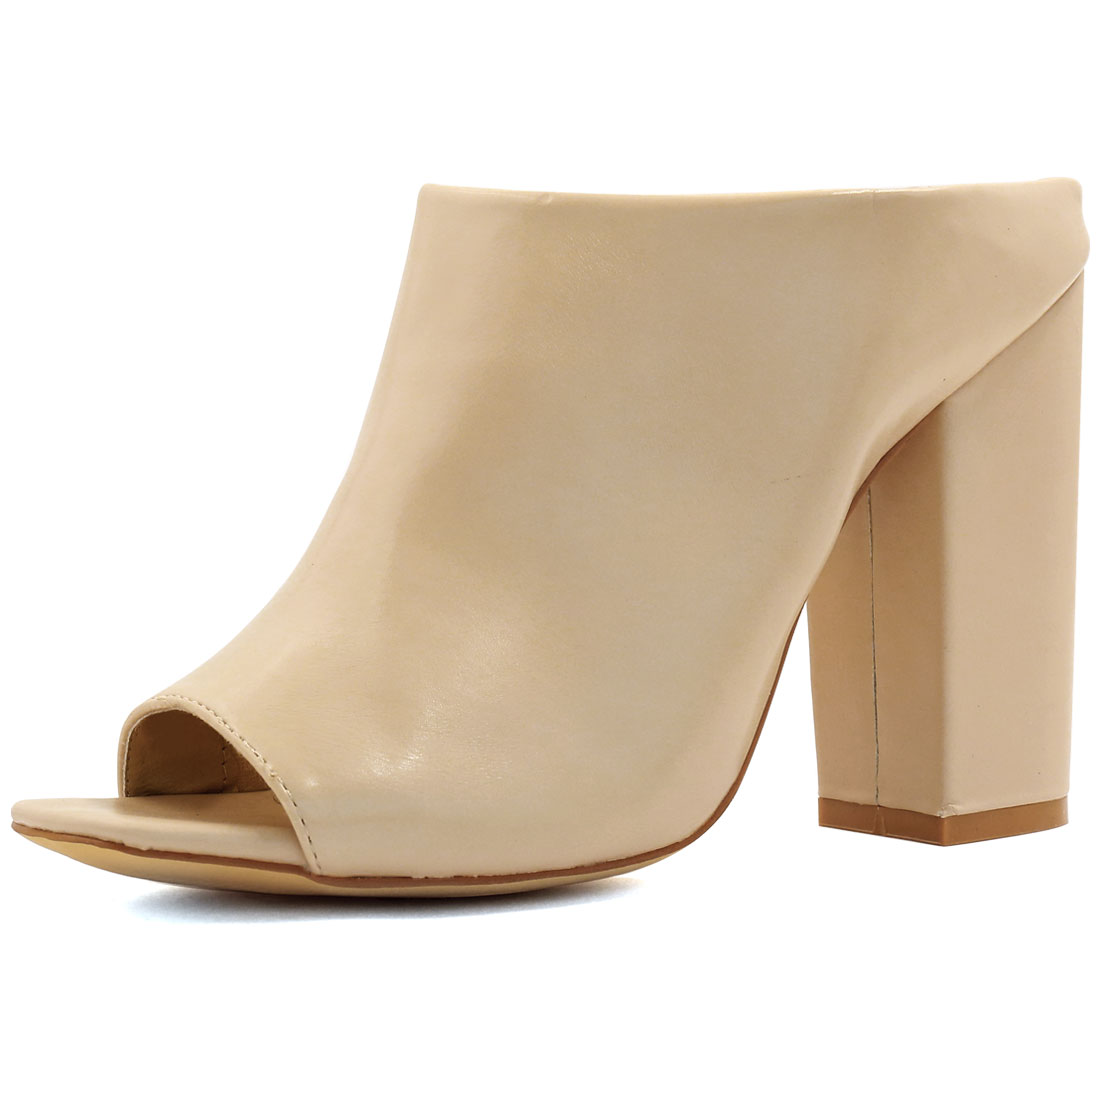 Woman Square Peep Toe Slip On Chunky High Heel Mules Beige US 9.5